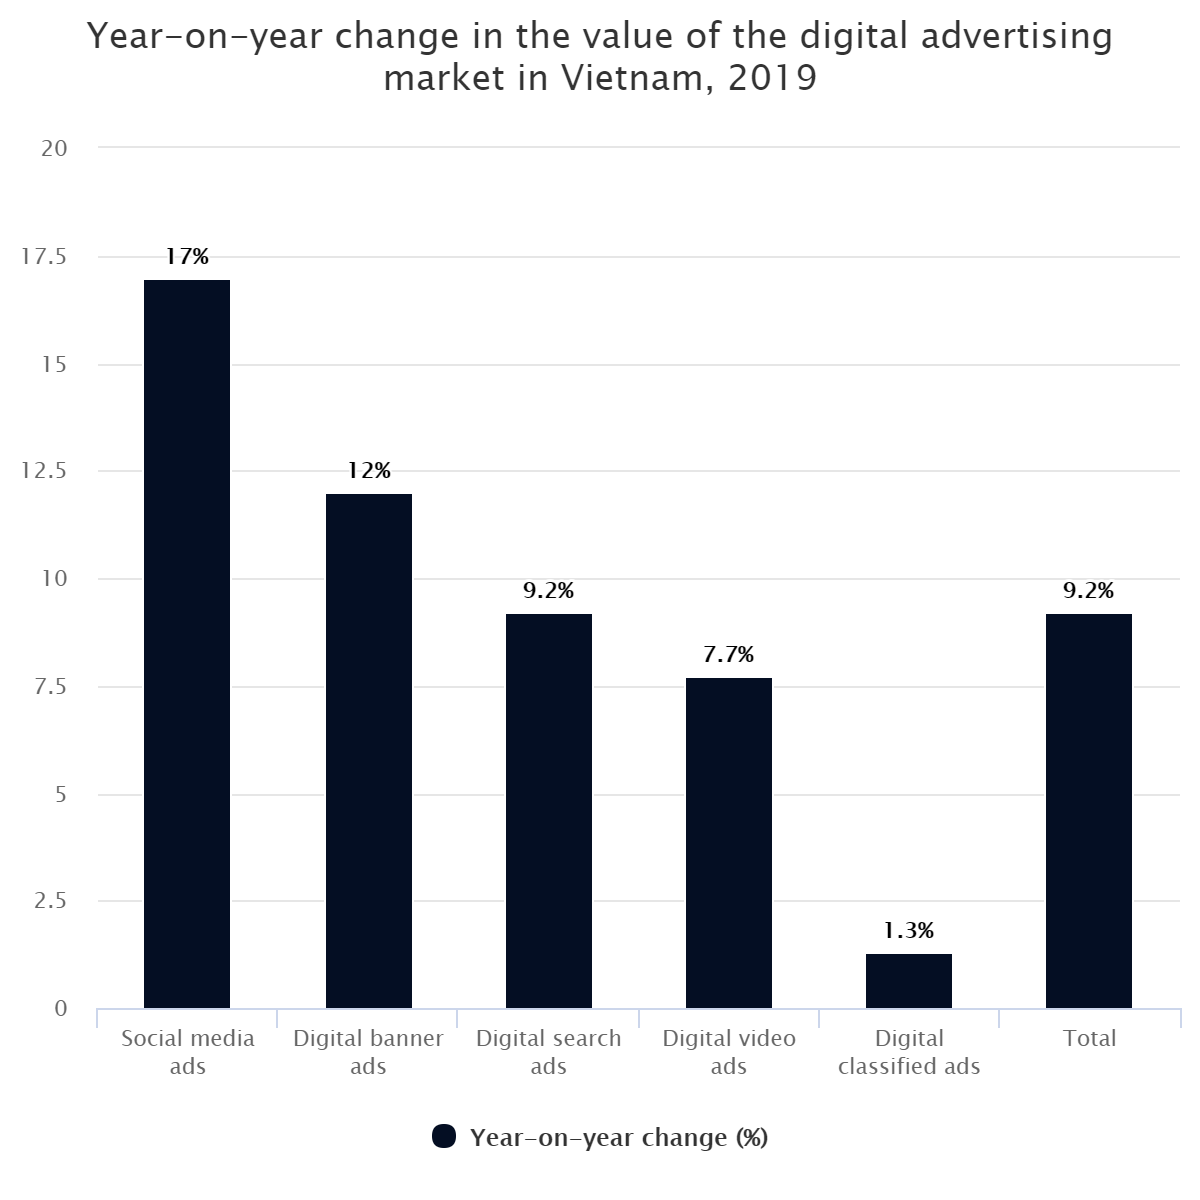 Year-on-year change in the value of the digital advertising market in Vietnam, 2019